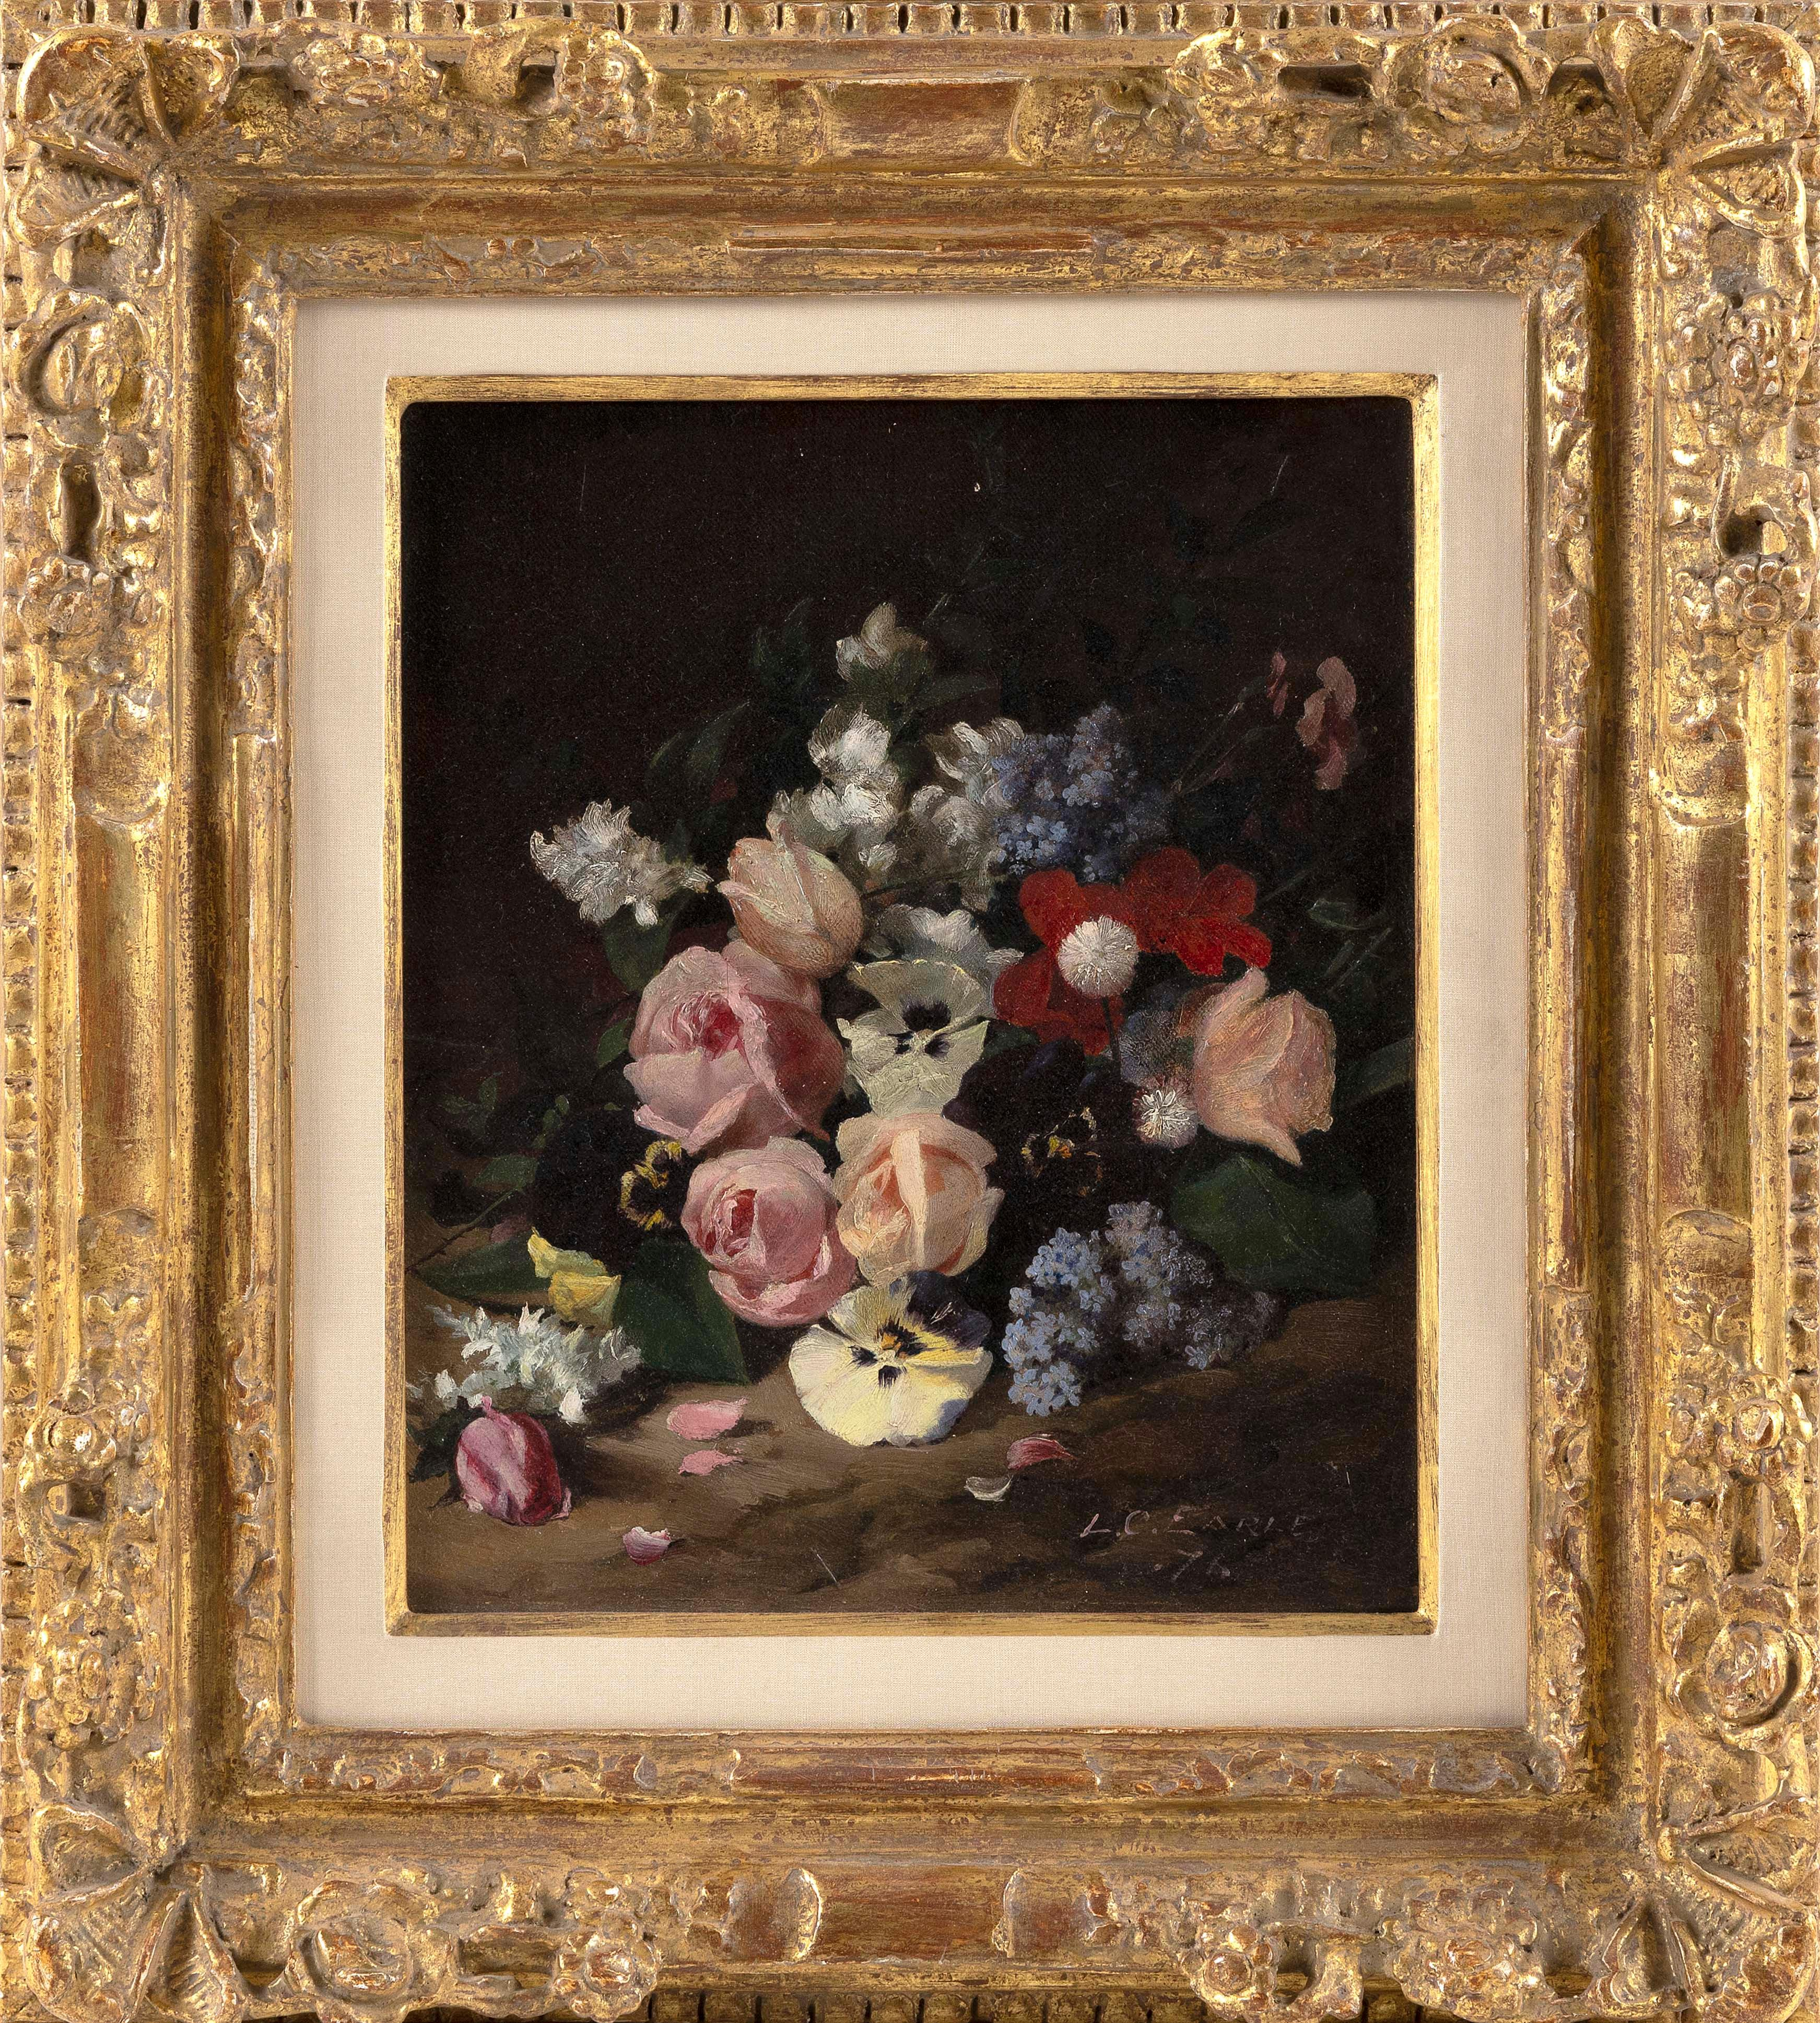 """LAWRENCE CARMICHAEL EARLE (Michigan/New York/New Jersey, 1845-1921), Floral still life., Oil on canvas, 12"""" x 10"""". Framed 19"""" x 17""""."""